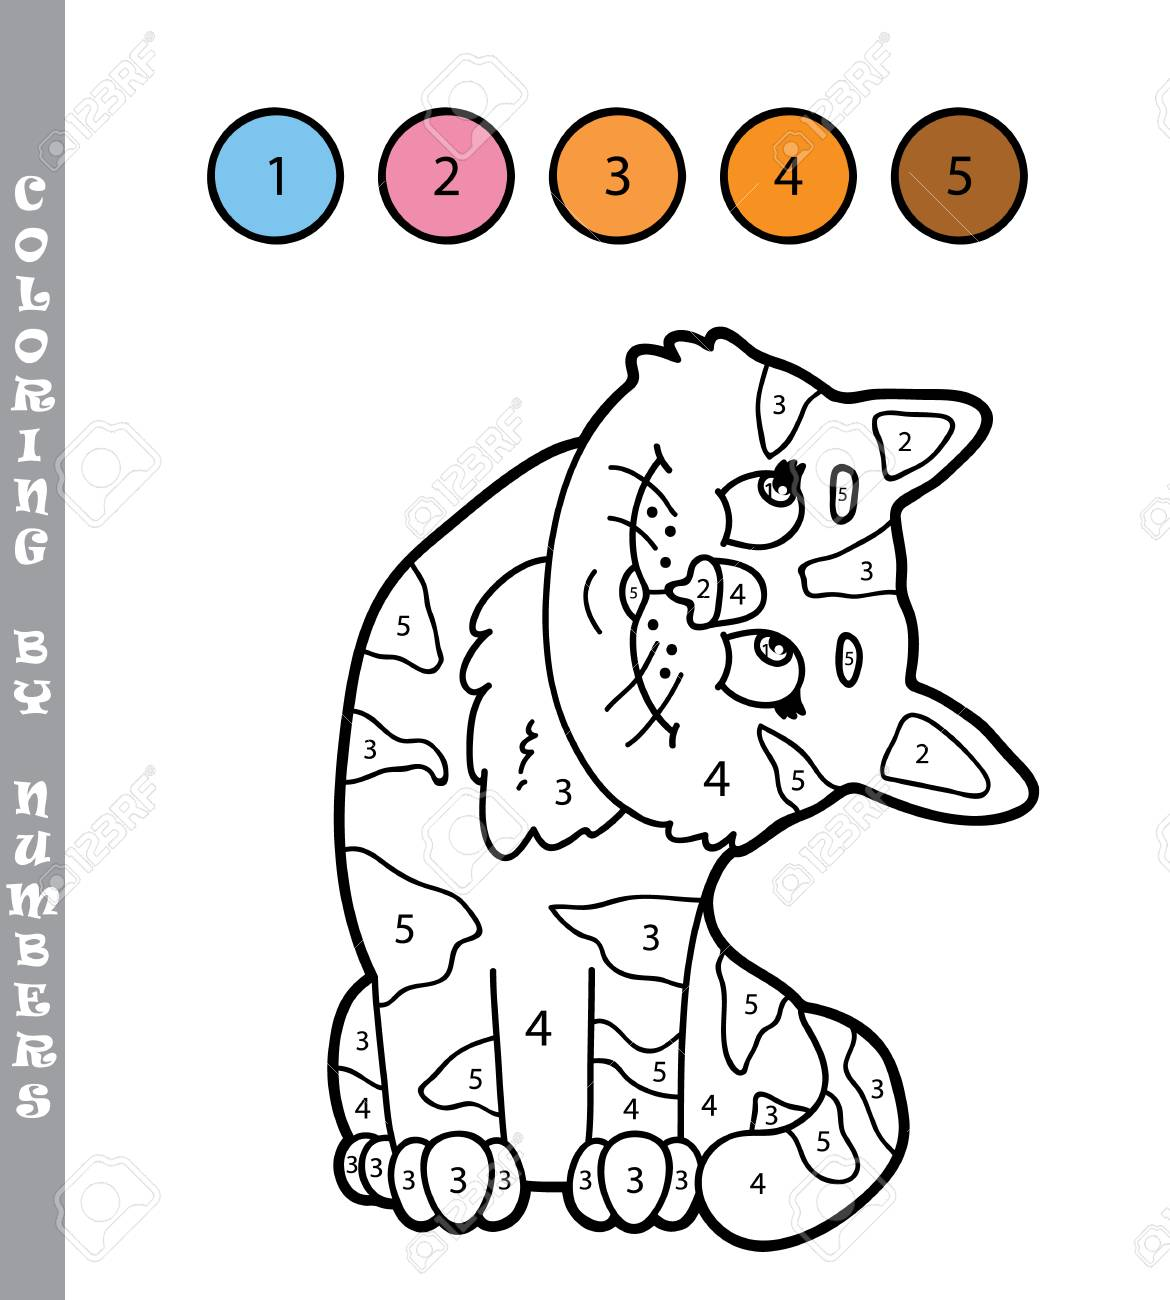 Vector Illustration Coloriage Par Numeros Jeu Educatif Avec